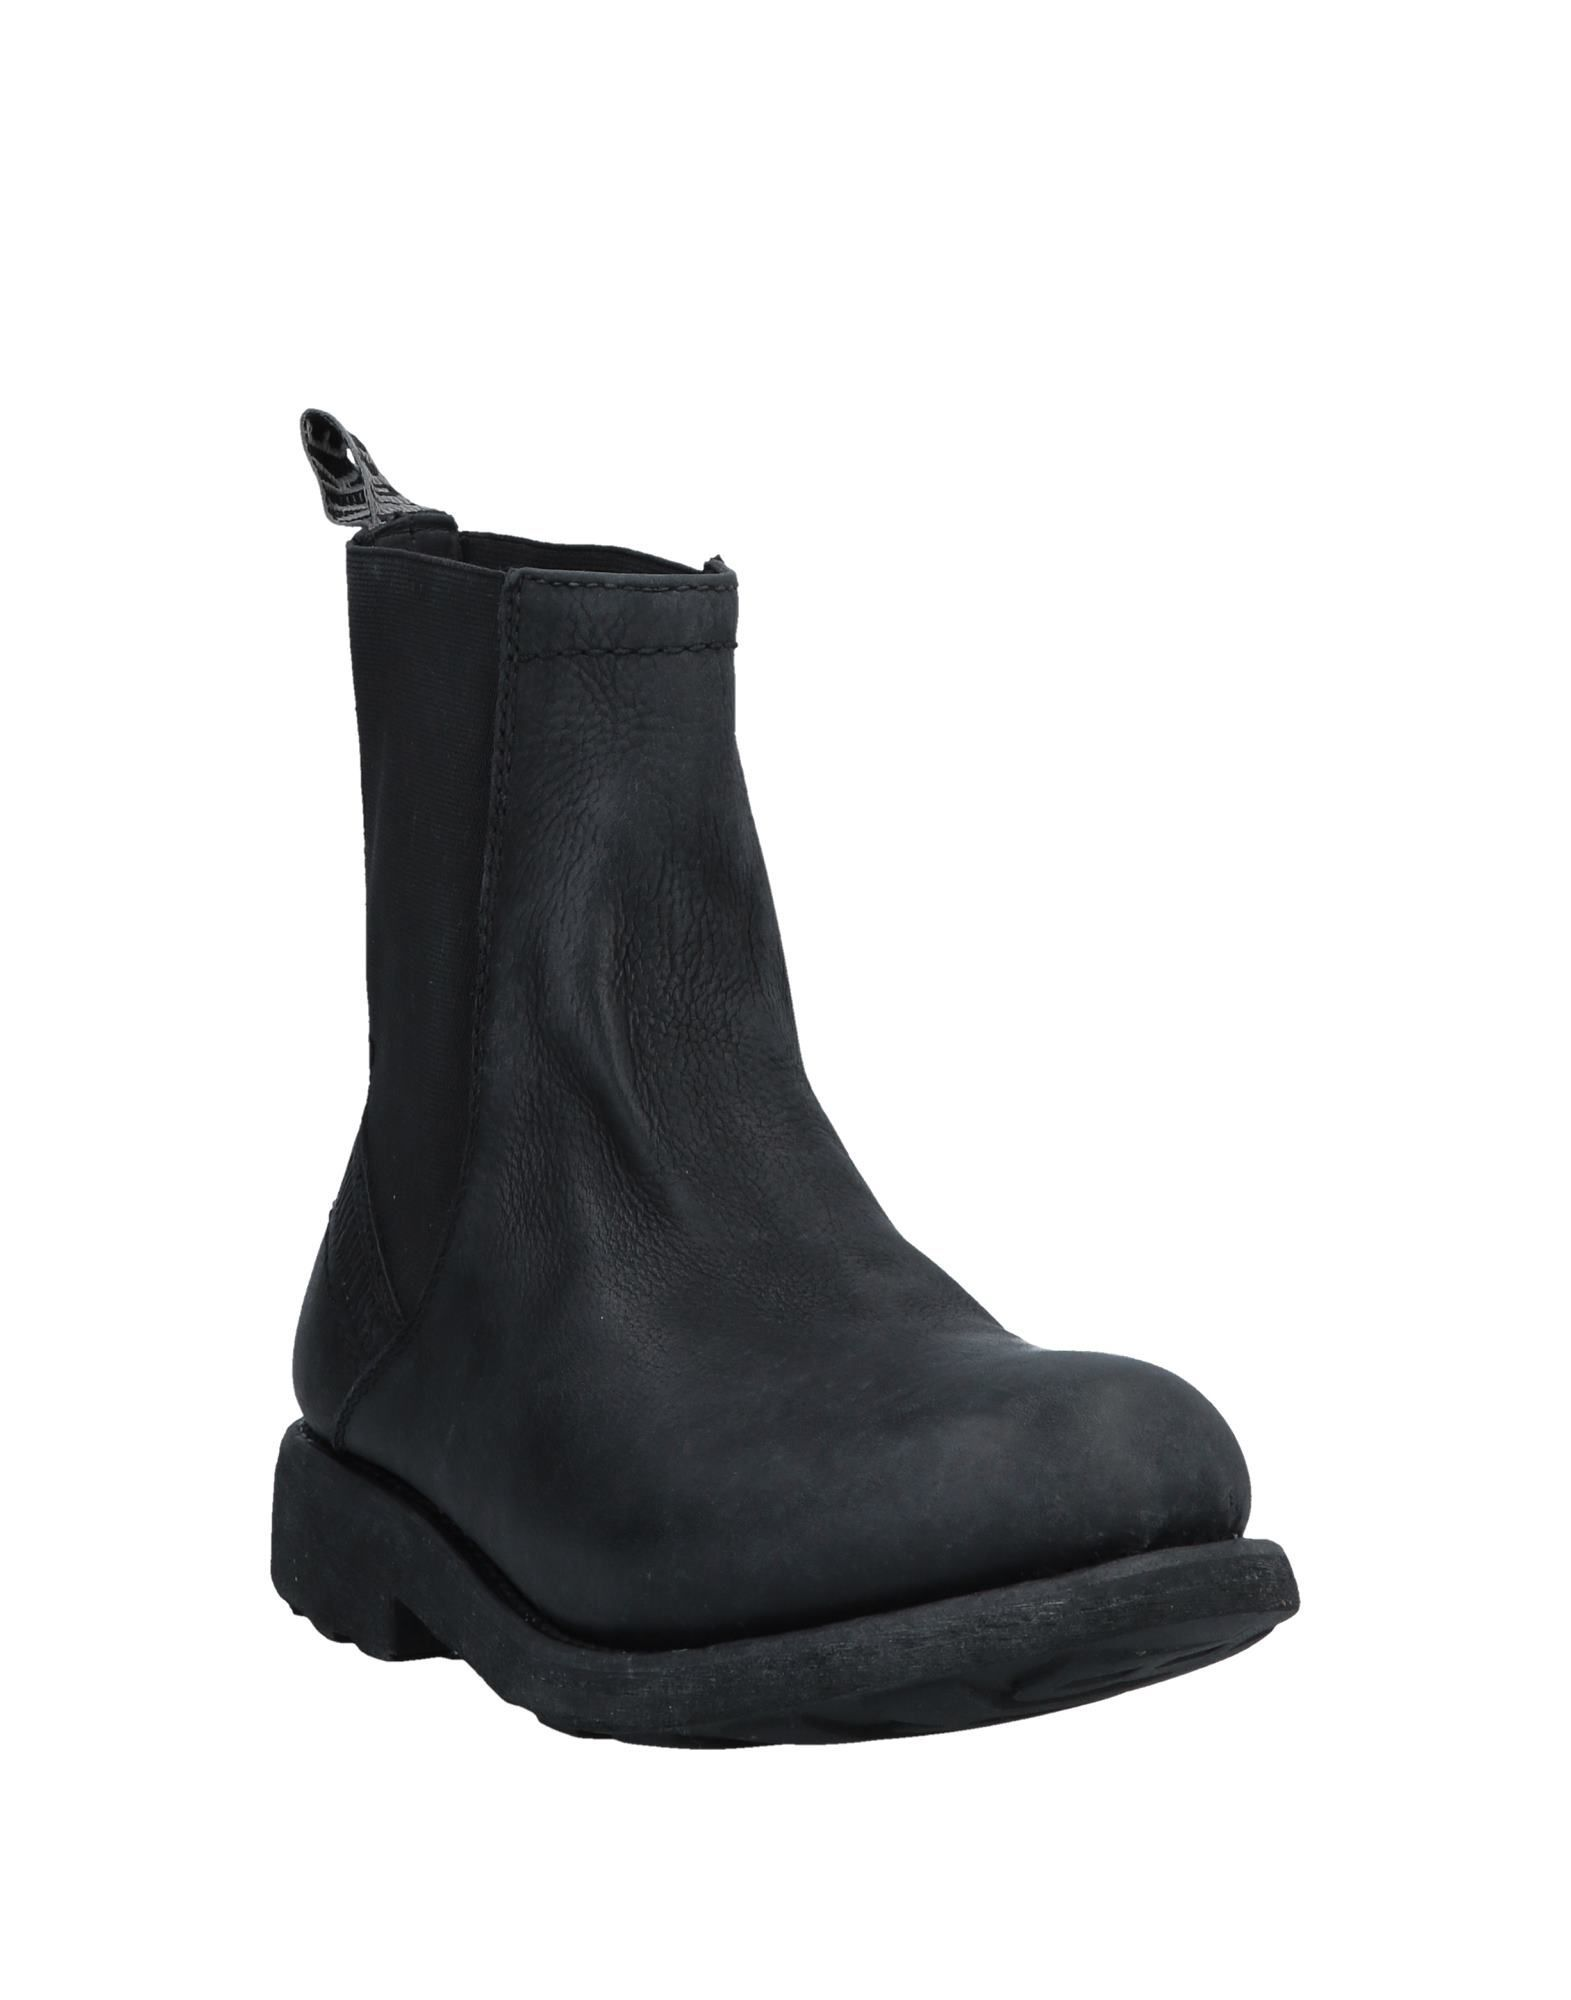 Bikkembergs Black Leather Ankle Boots